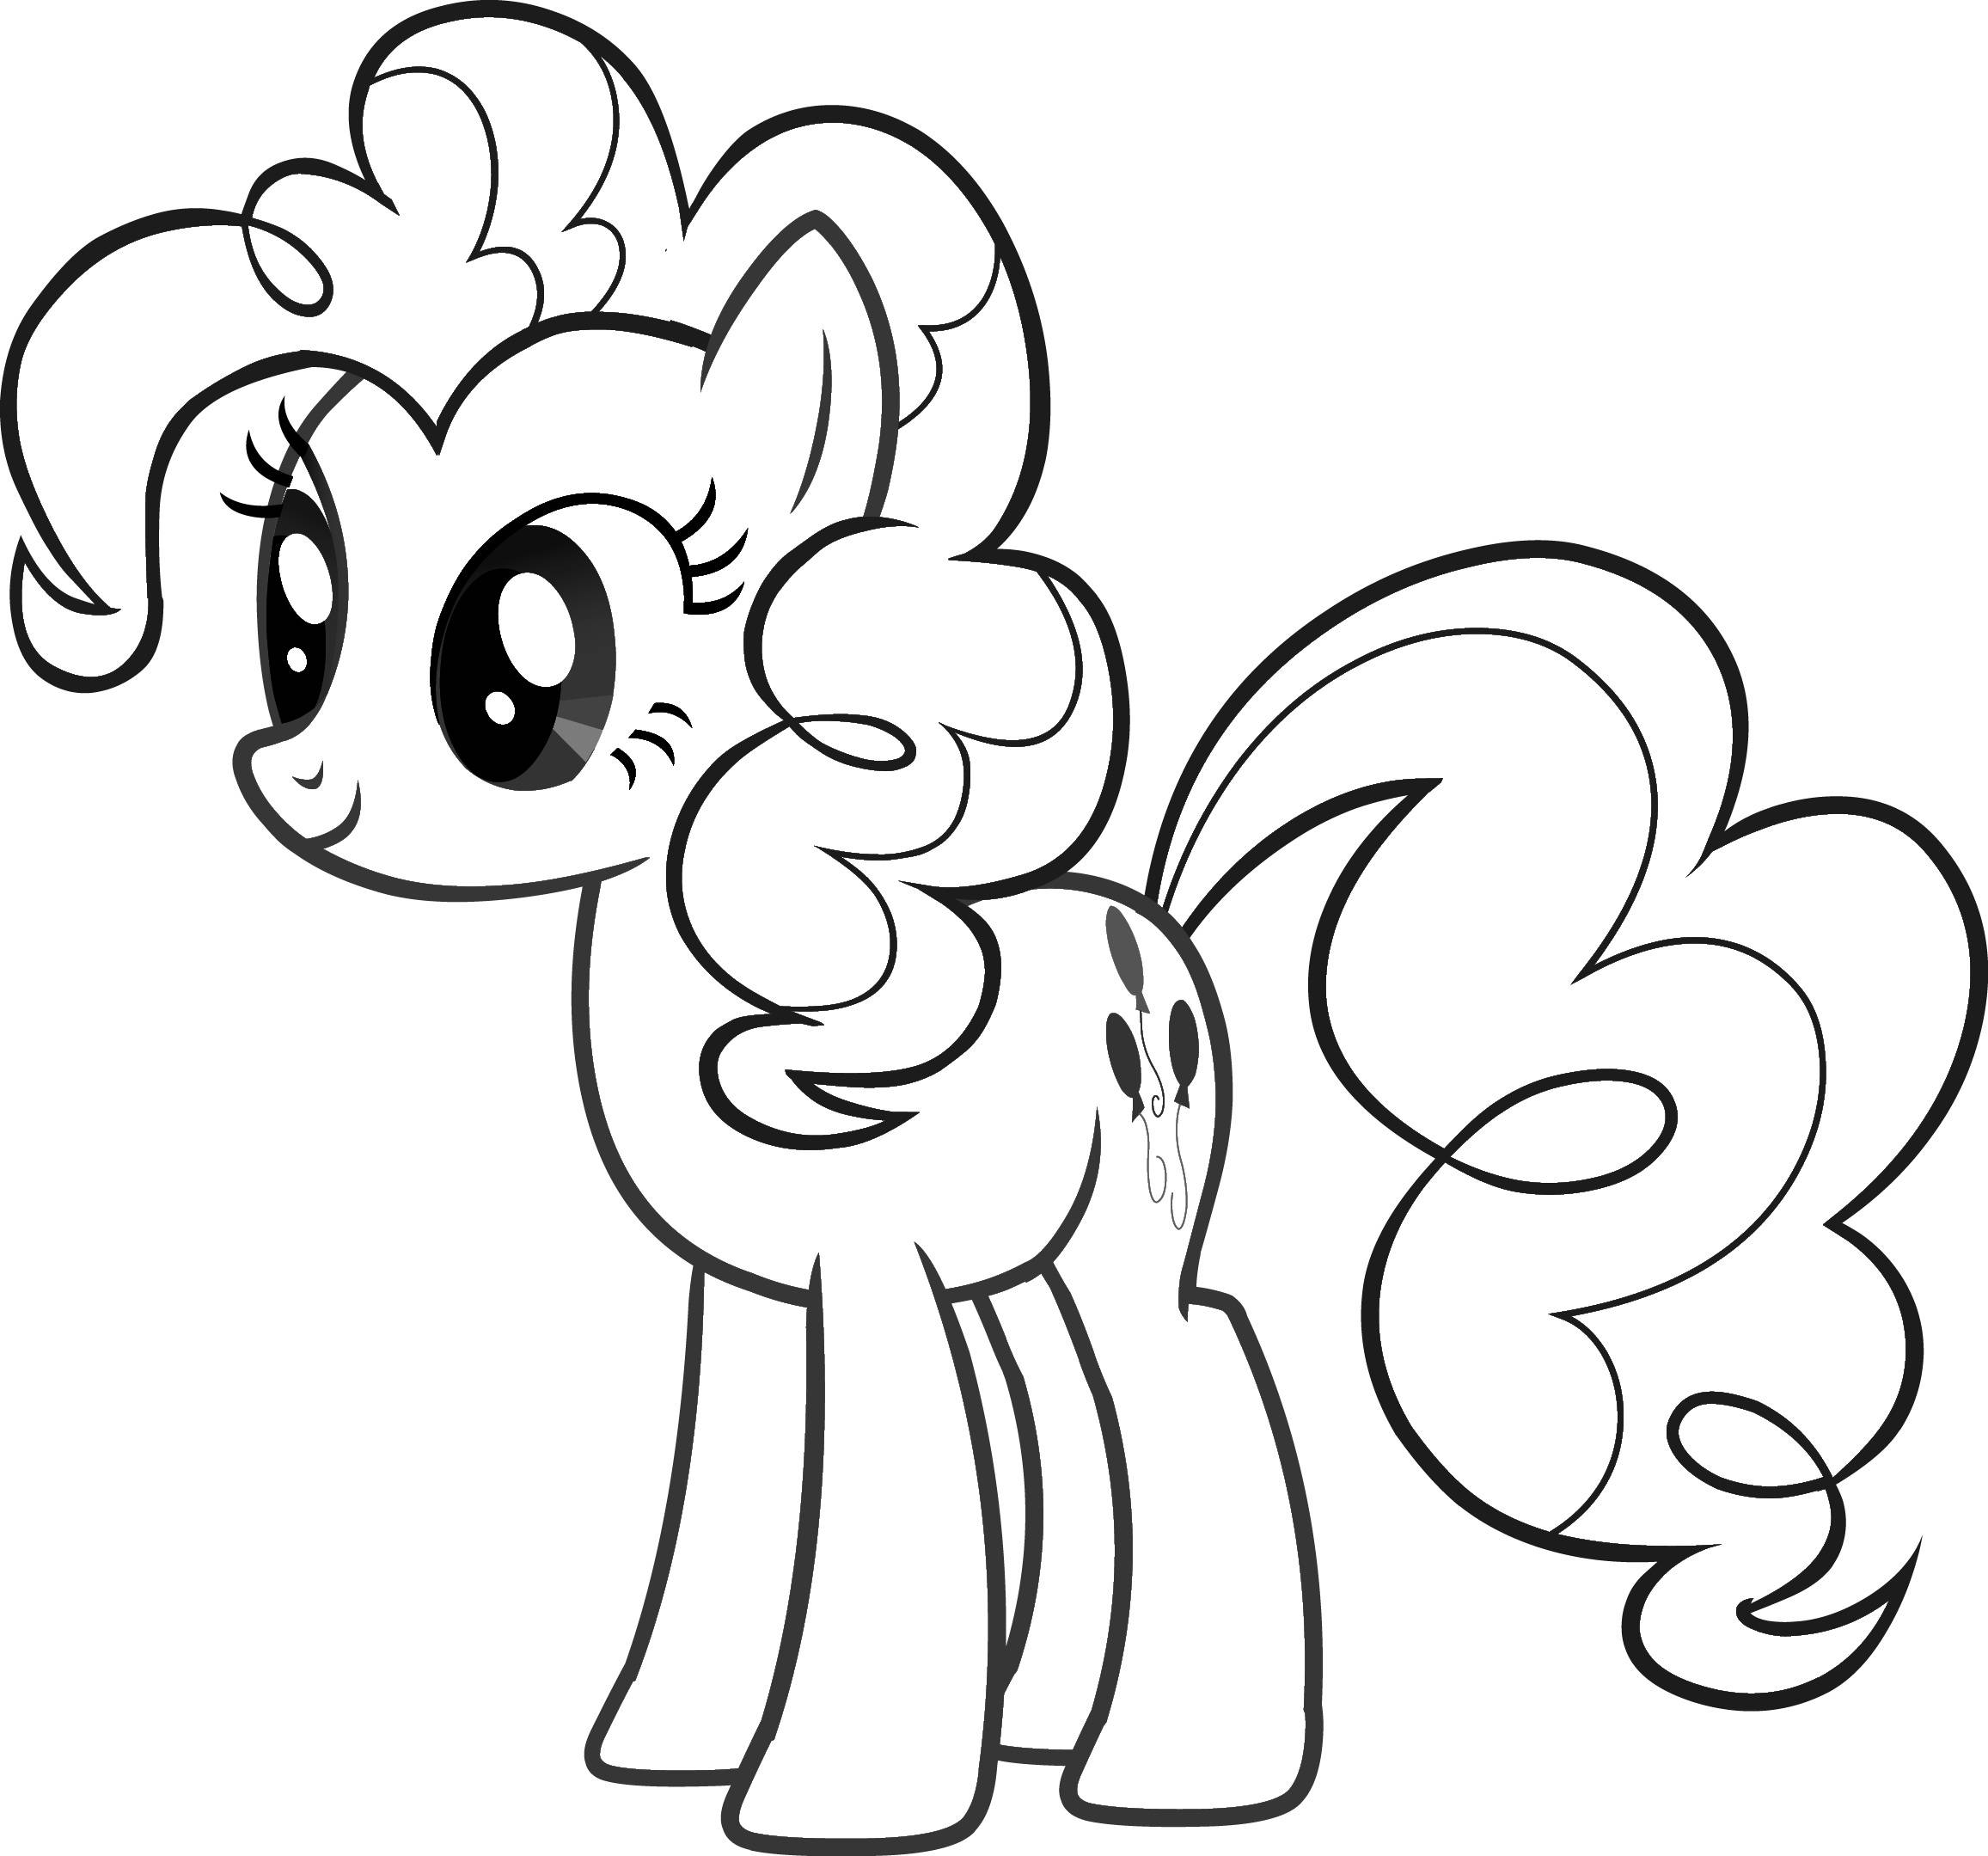 Free Printable My Little Pony Coloring Pages For Kids Printable Coloring Pages